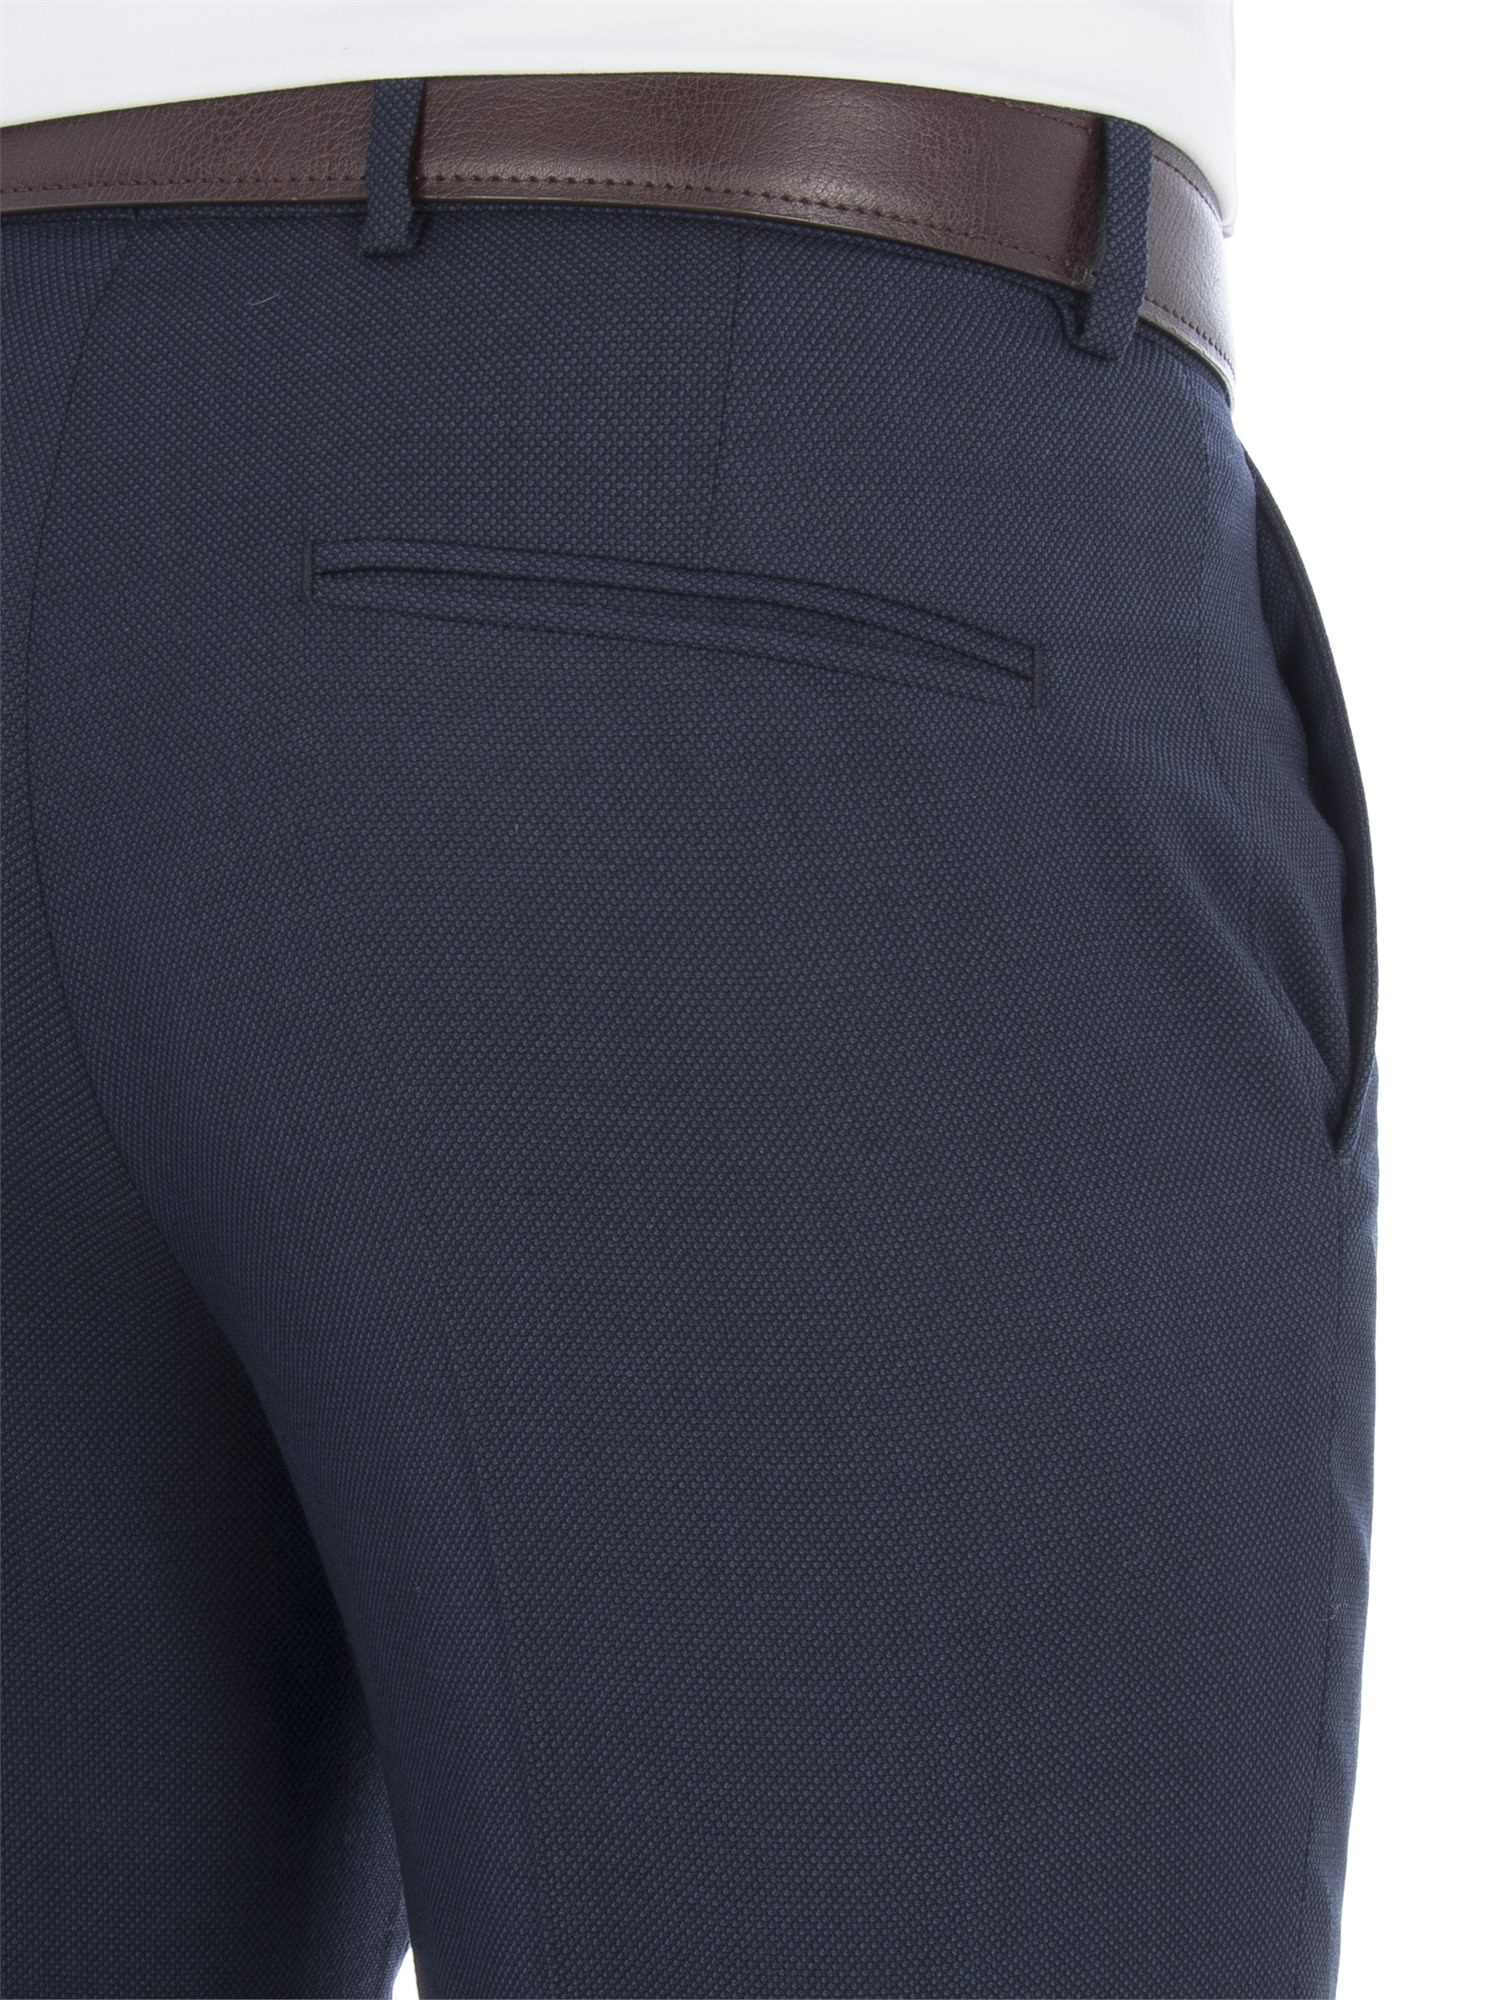 online here buying now another chance Navy Birdseye Regular Fit Trousers